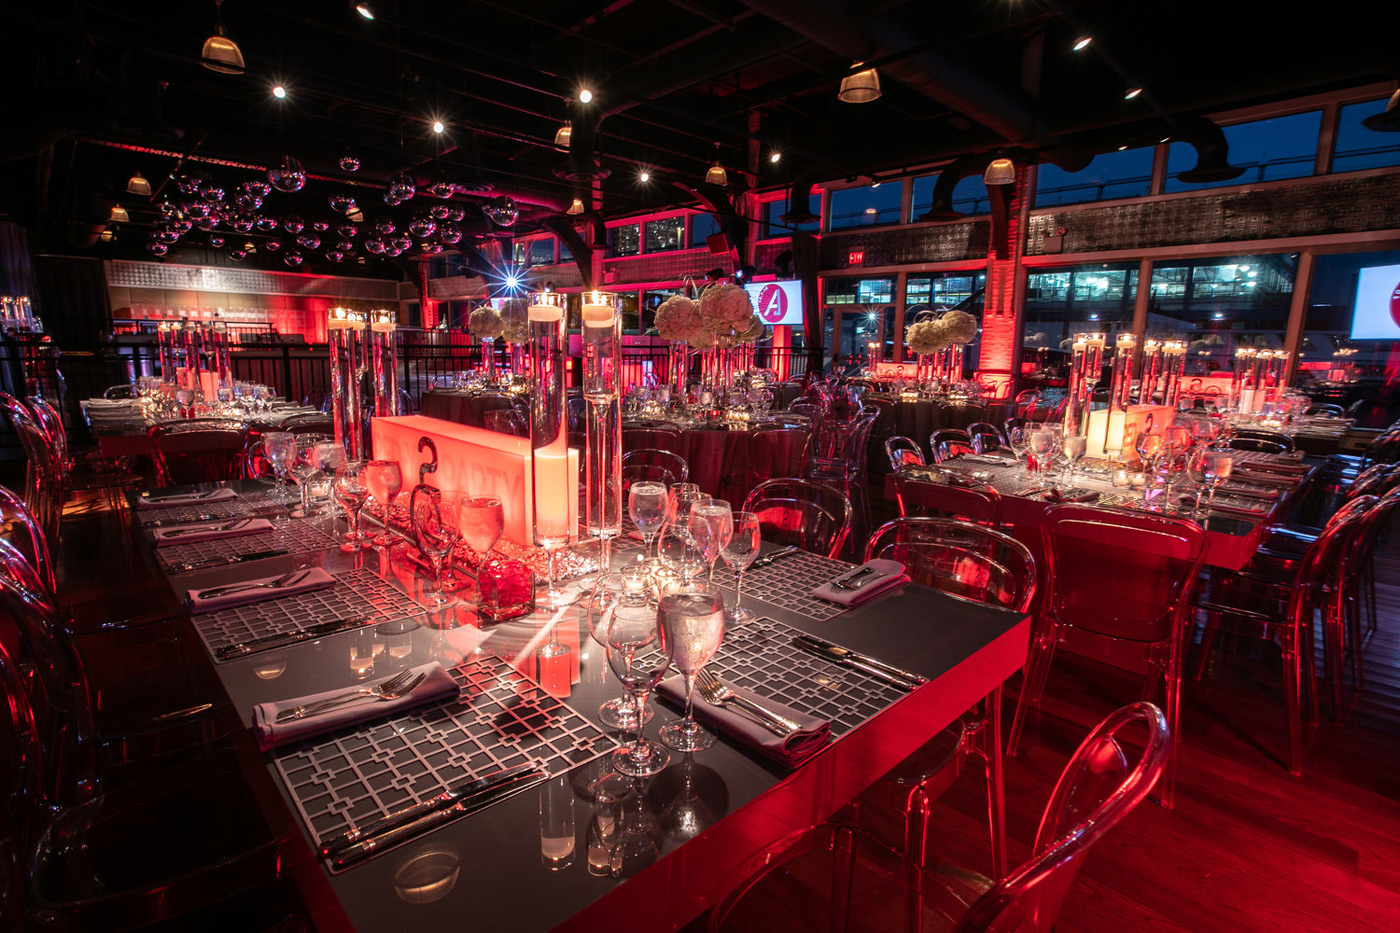 Tables set for Mitzvah with red lighting